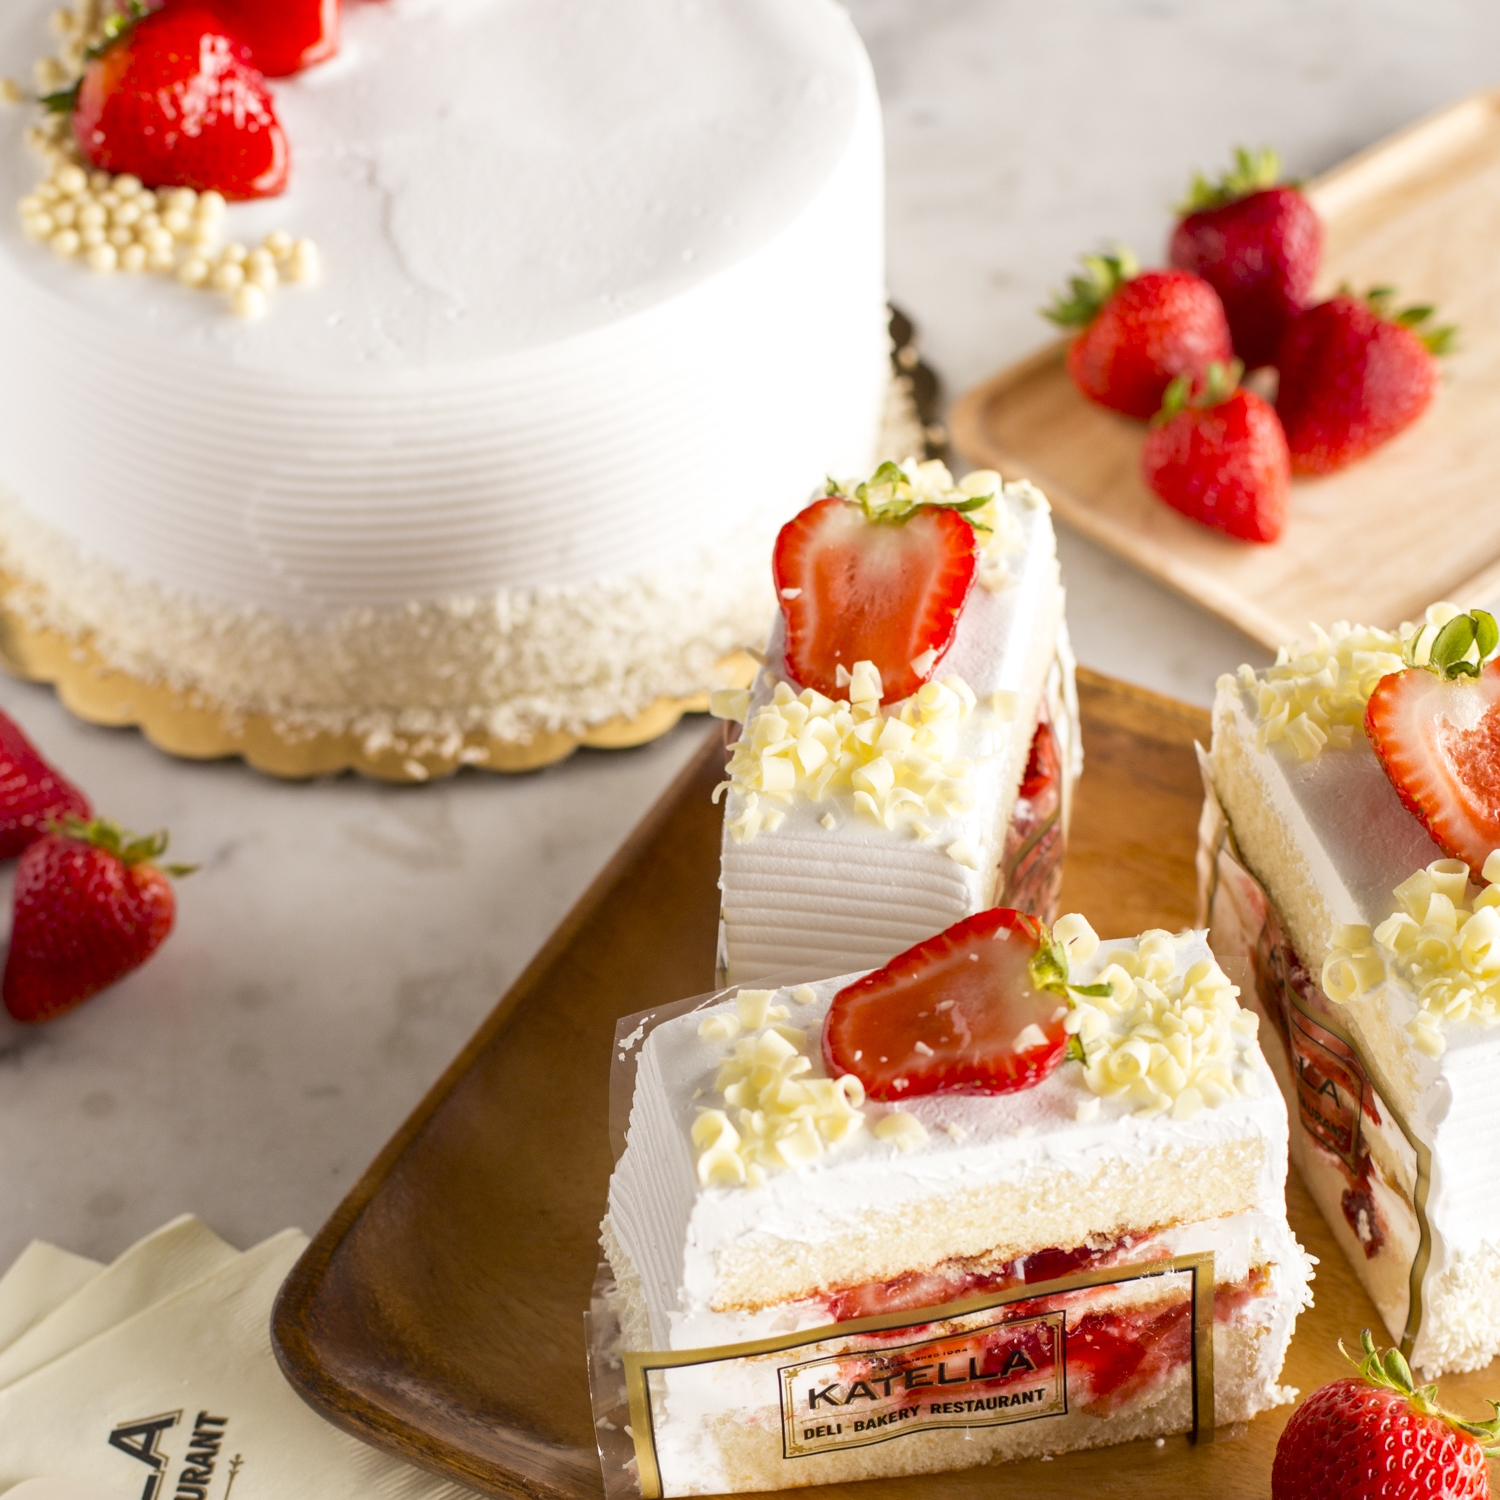 Katella Bakery specialty white chocolate  and strawberry cake